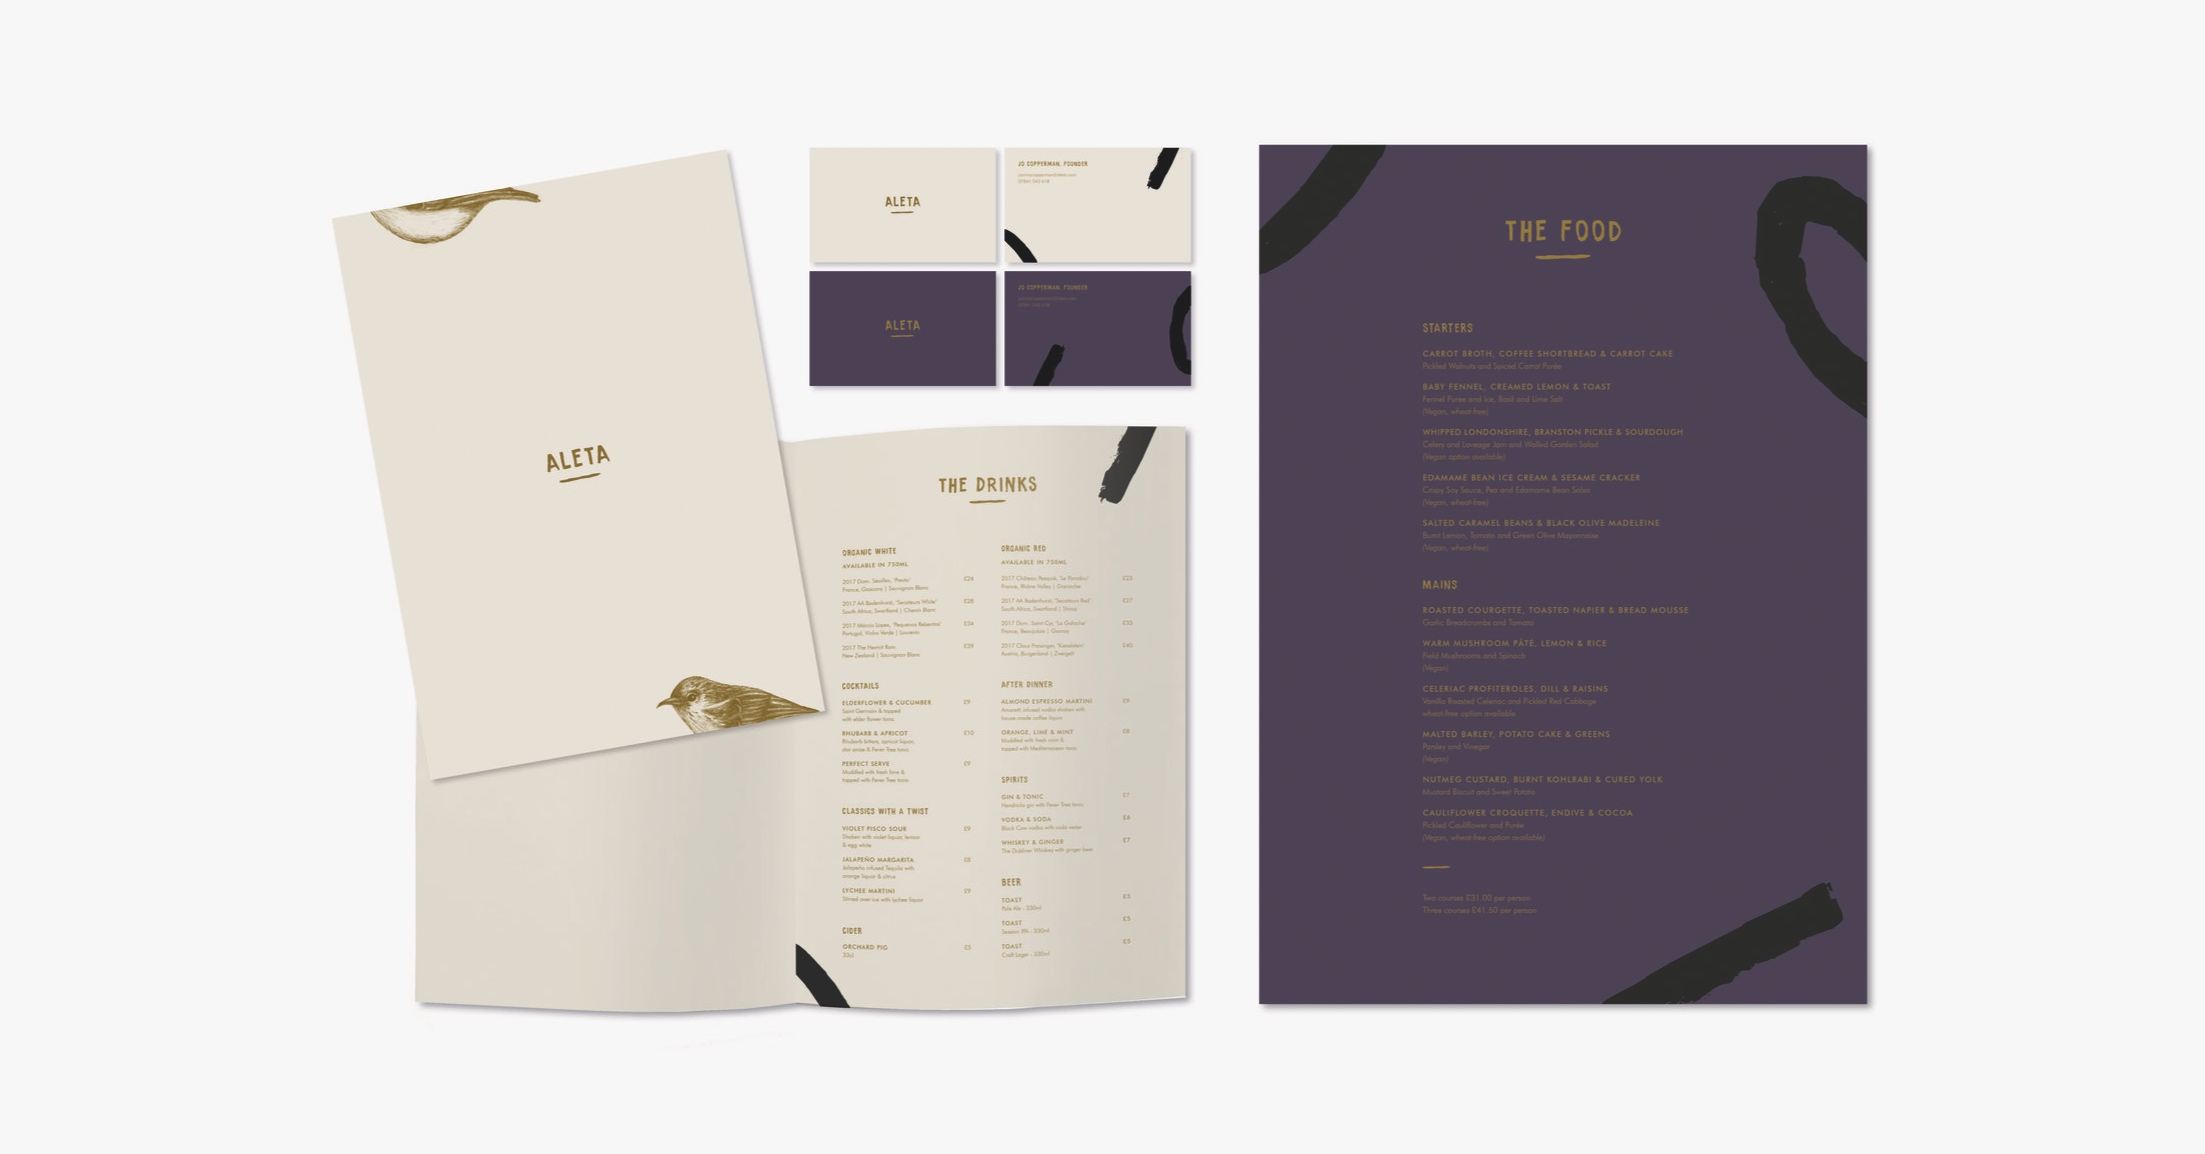 Aleta-Restaurant-Branding_Menu-Design_Business-Cards.jpg